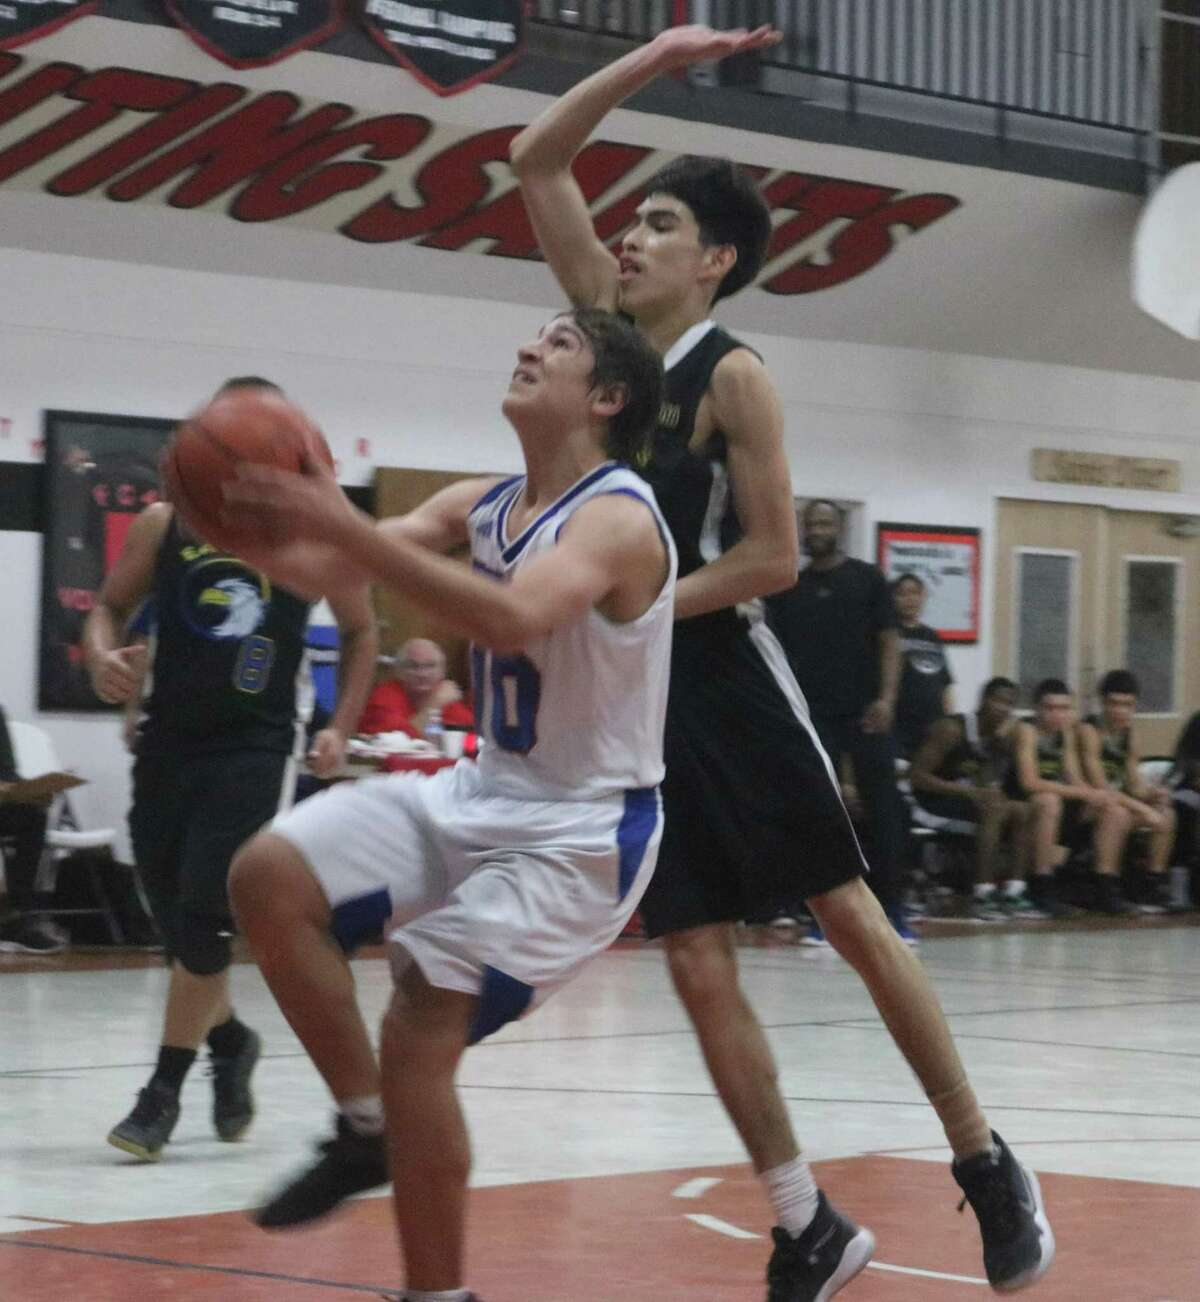 Matthew Ybarra gets fouled in the paint by a Sanchez defender during Saturday night's tournament championship game. One didn't see Ybarra in the paint very much considering he led the Warriors with 10 3-point goals for the three games they played.